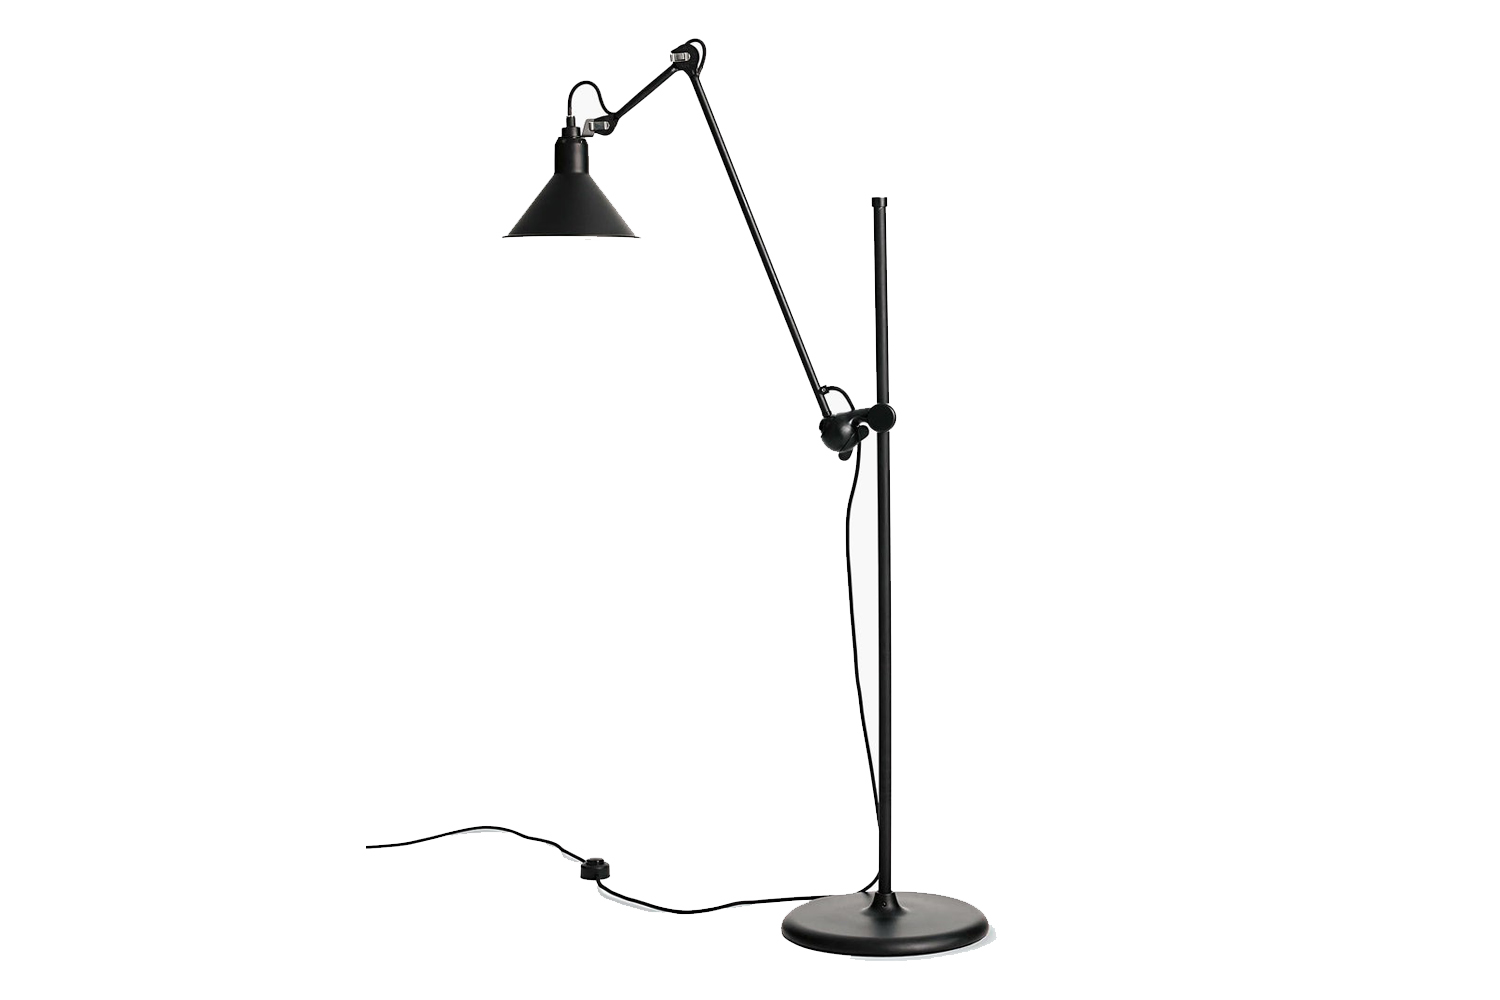 the lampe gras model \2\15l floor lamp in black is \$\1,040 at design within re 19